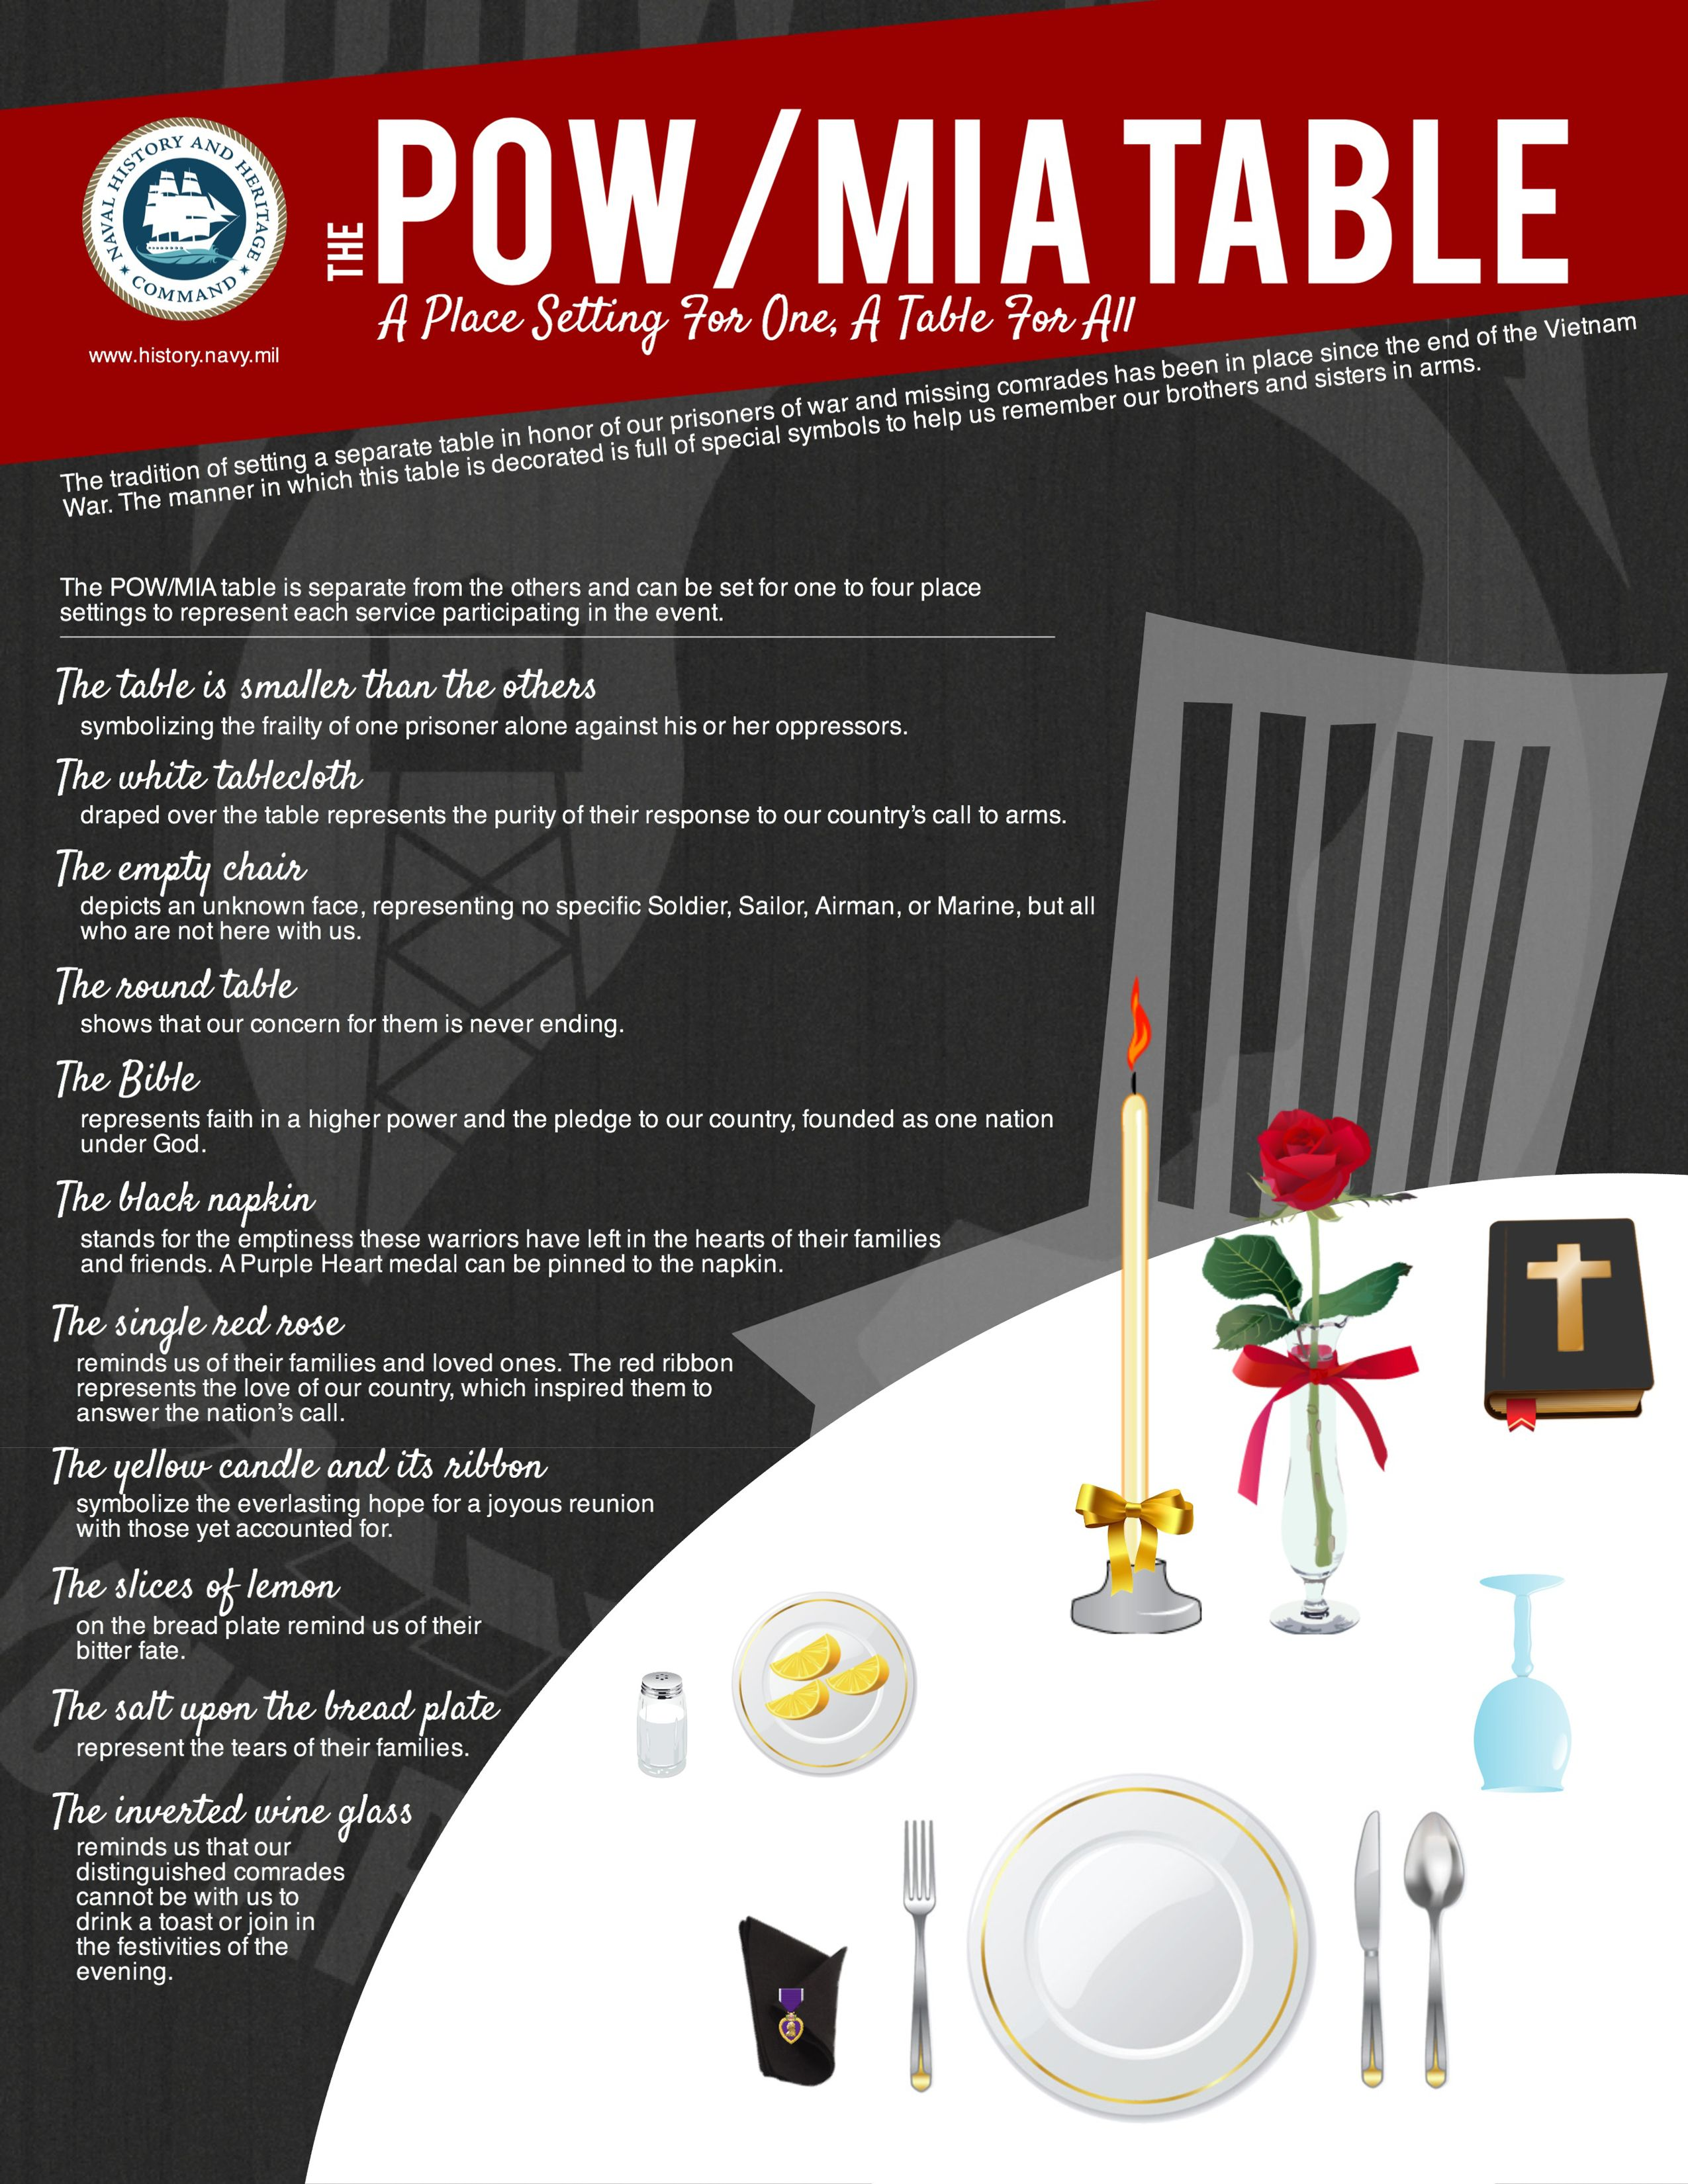 The Powmia Table A Place Setting For One A Table For All Navy